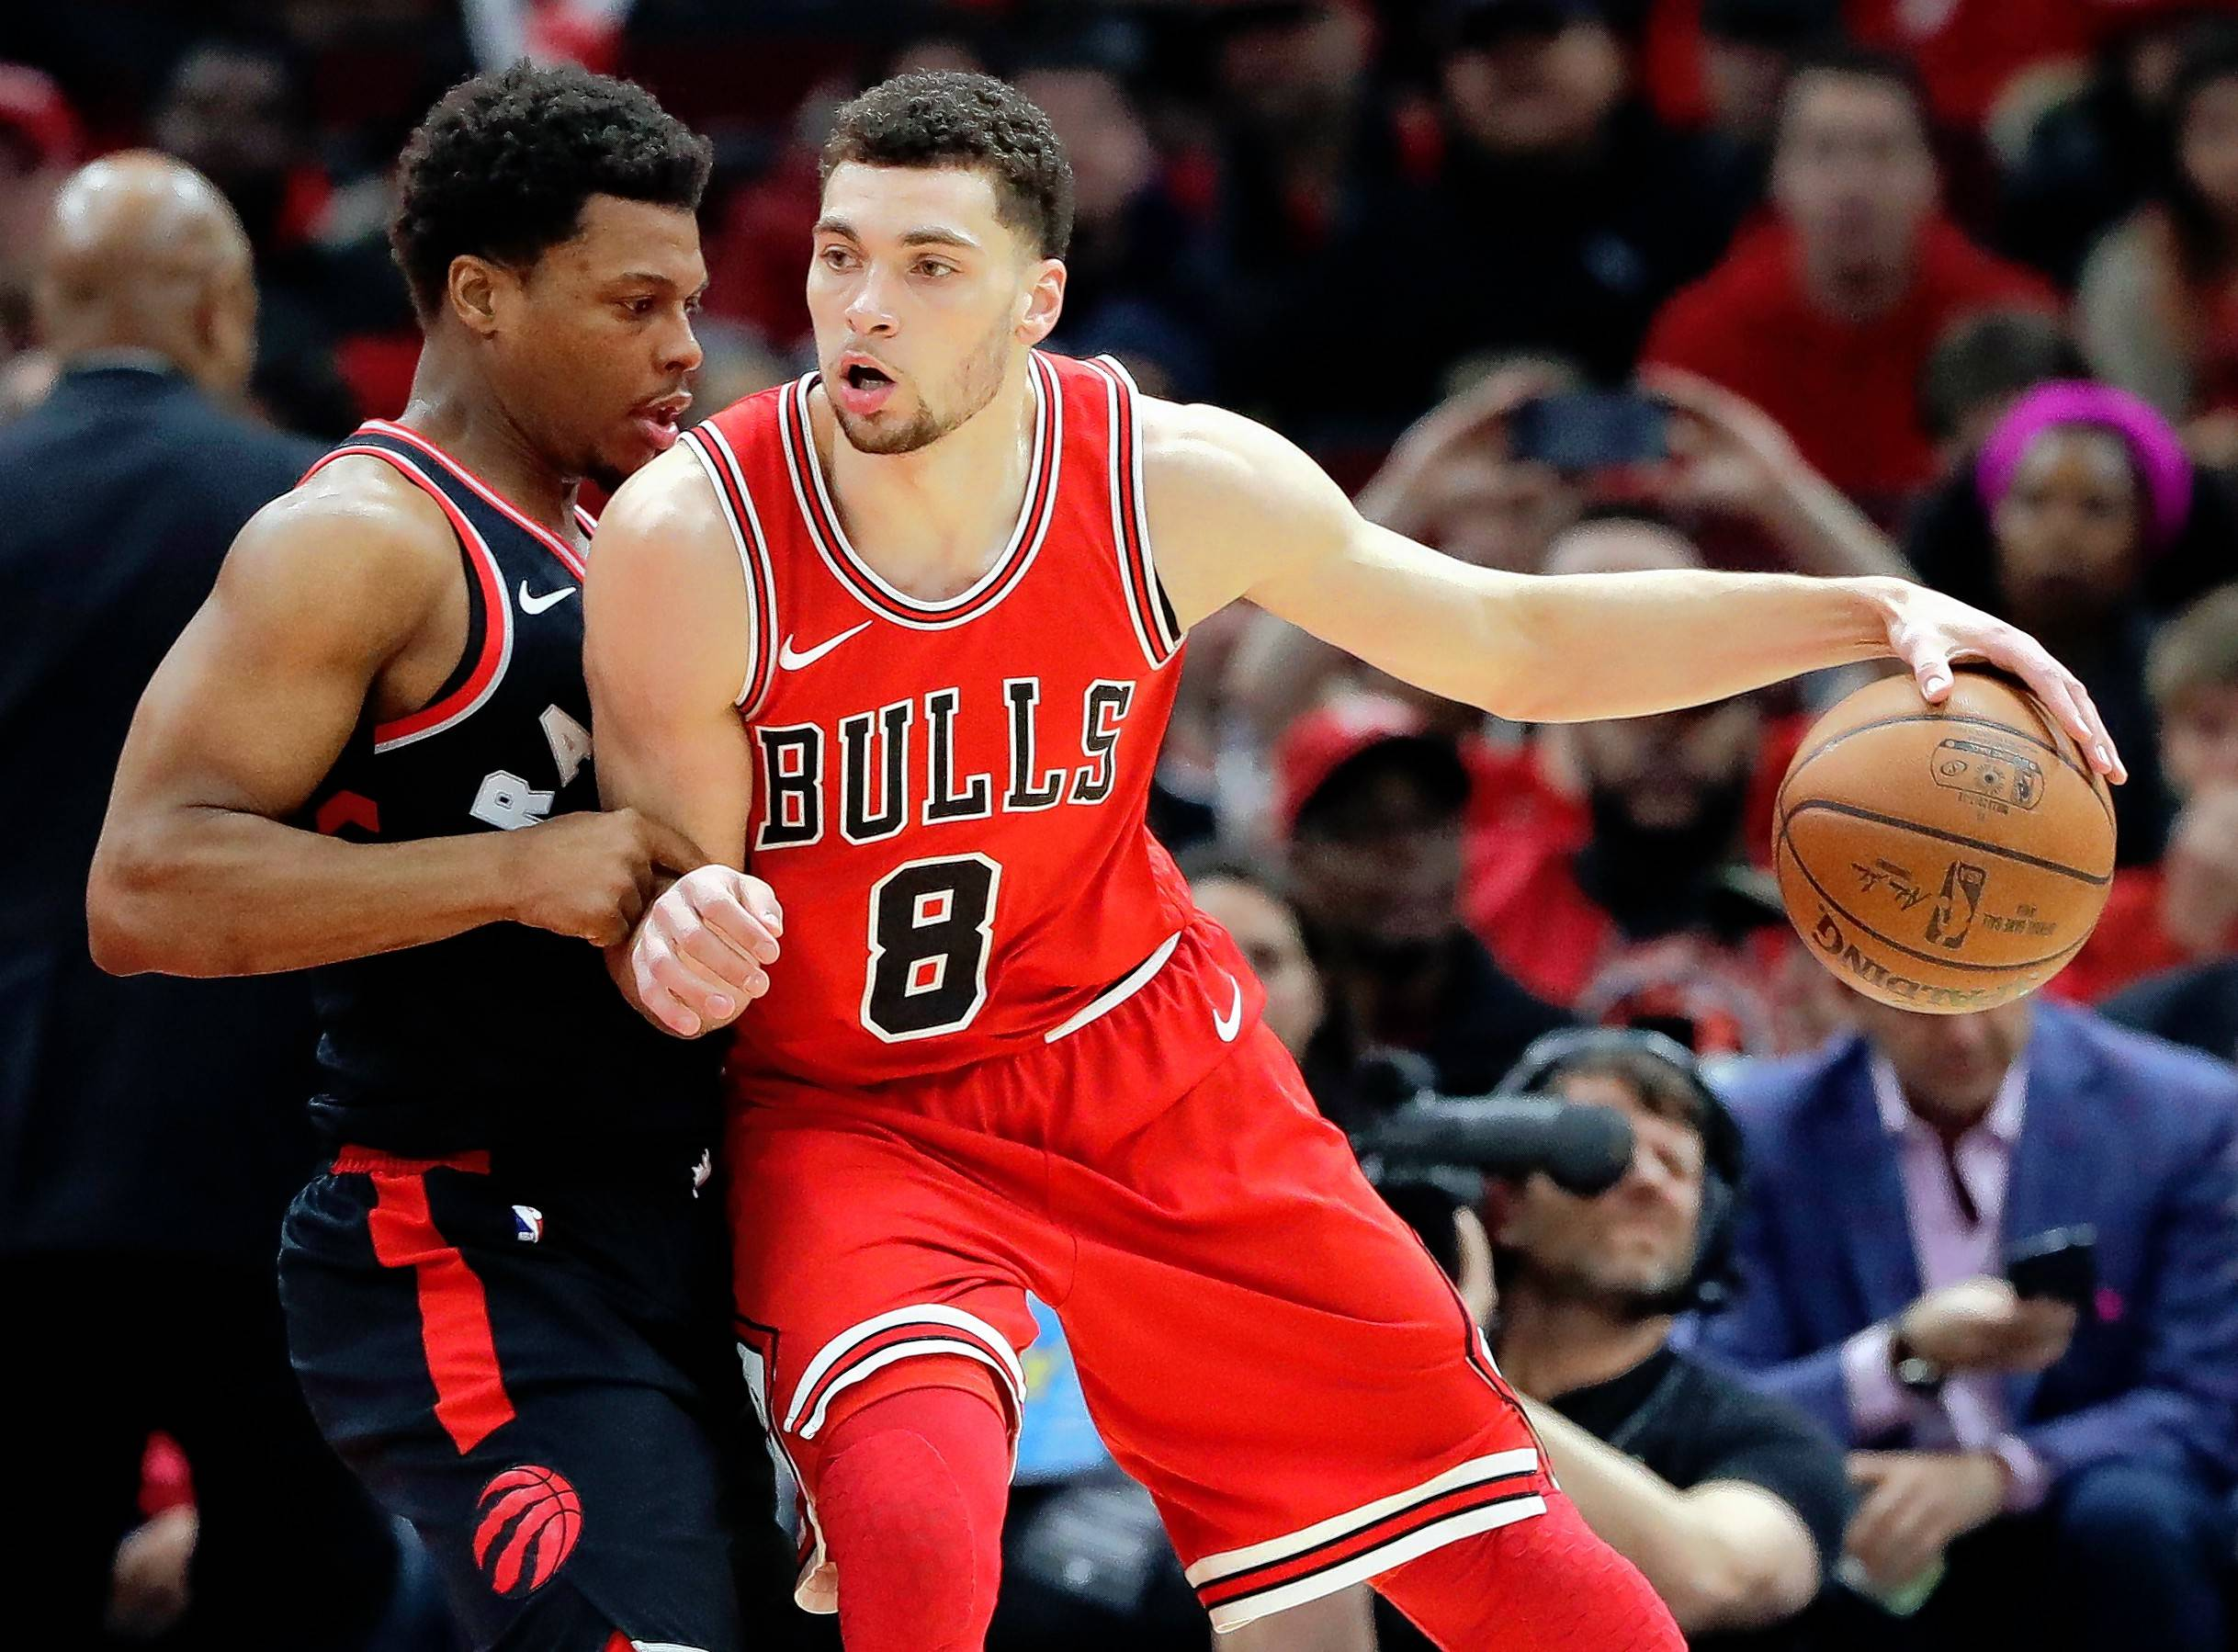 Chicago Bulls guard Zach LaVine, right, drives against Toronto Raptors guard Kyle Lowry during the first half of an NBA basketball game Wednesday, Feb. 14, 2018, in Chicago.